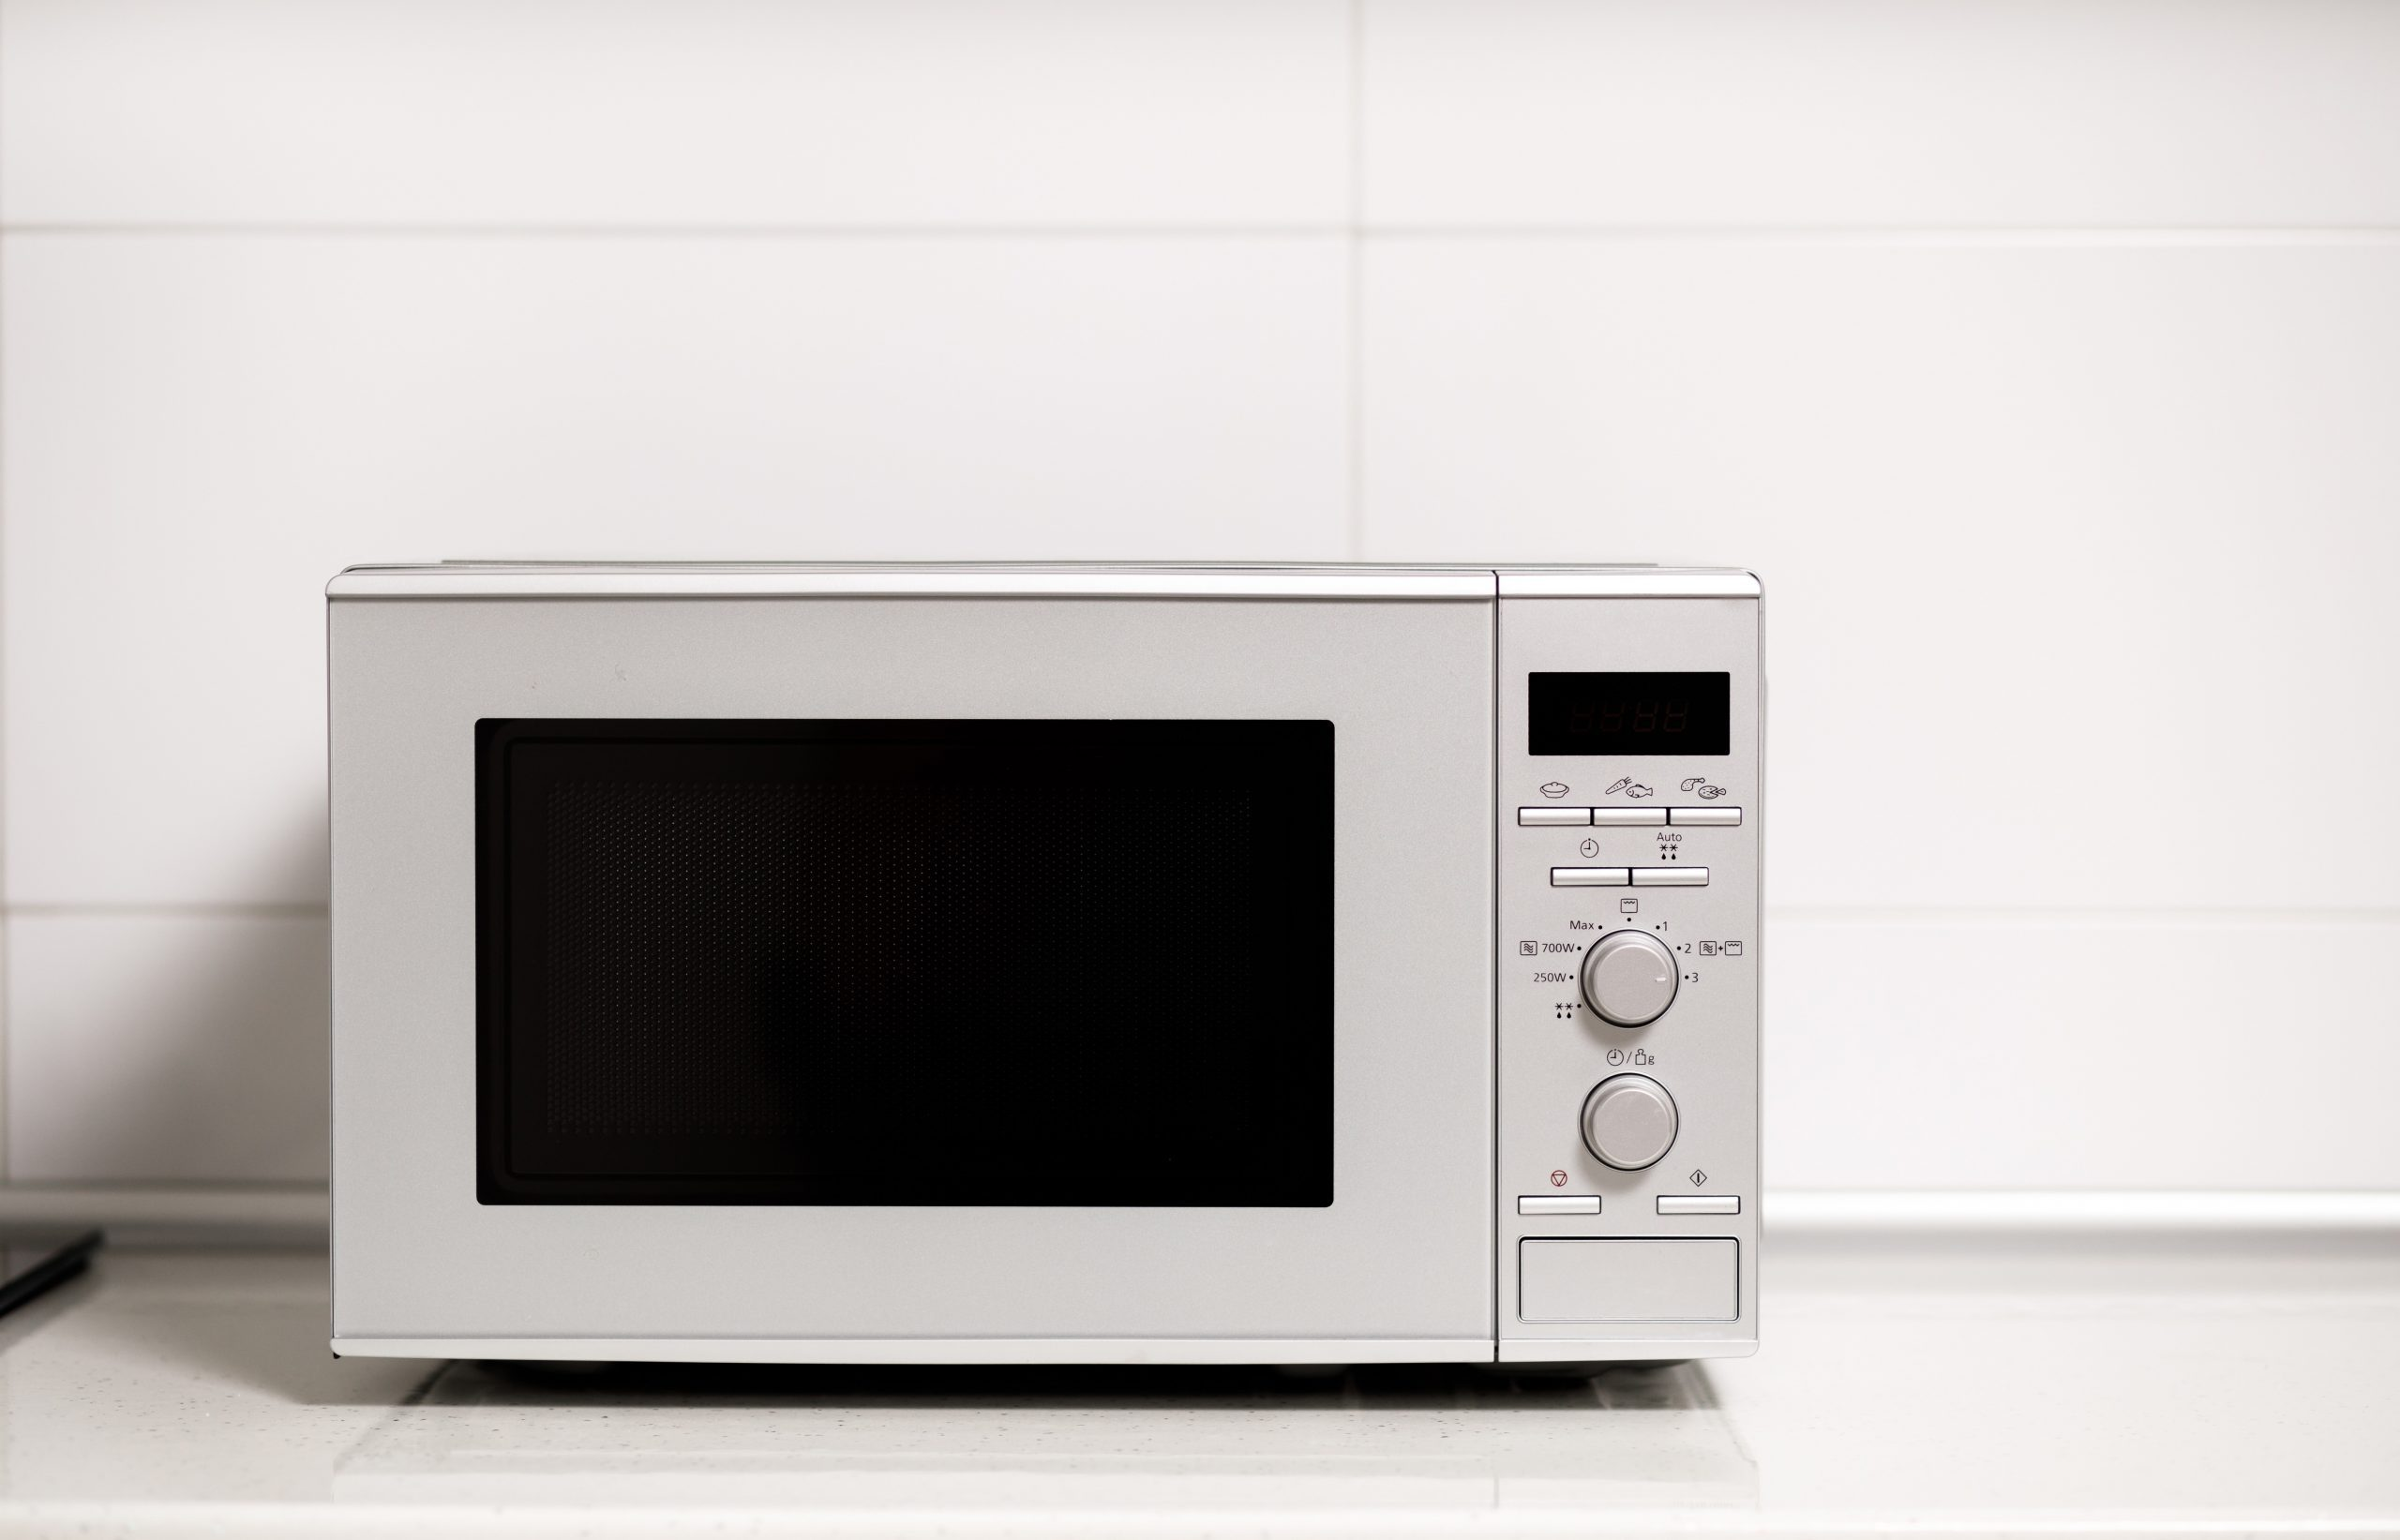 Modern kitchen interior. Kitchen interior with electric and microwave oven.